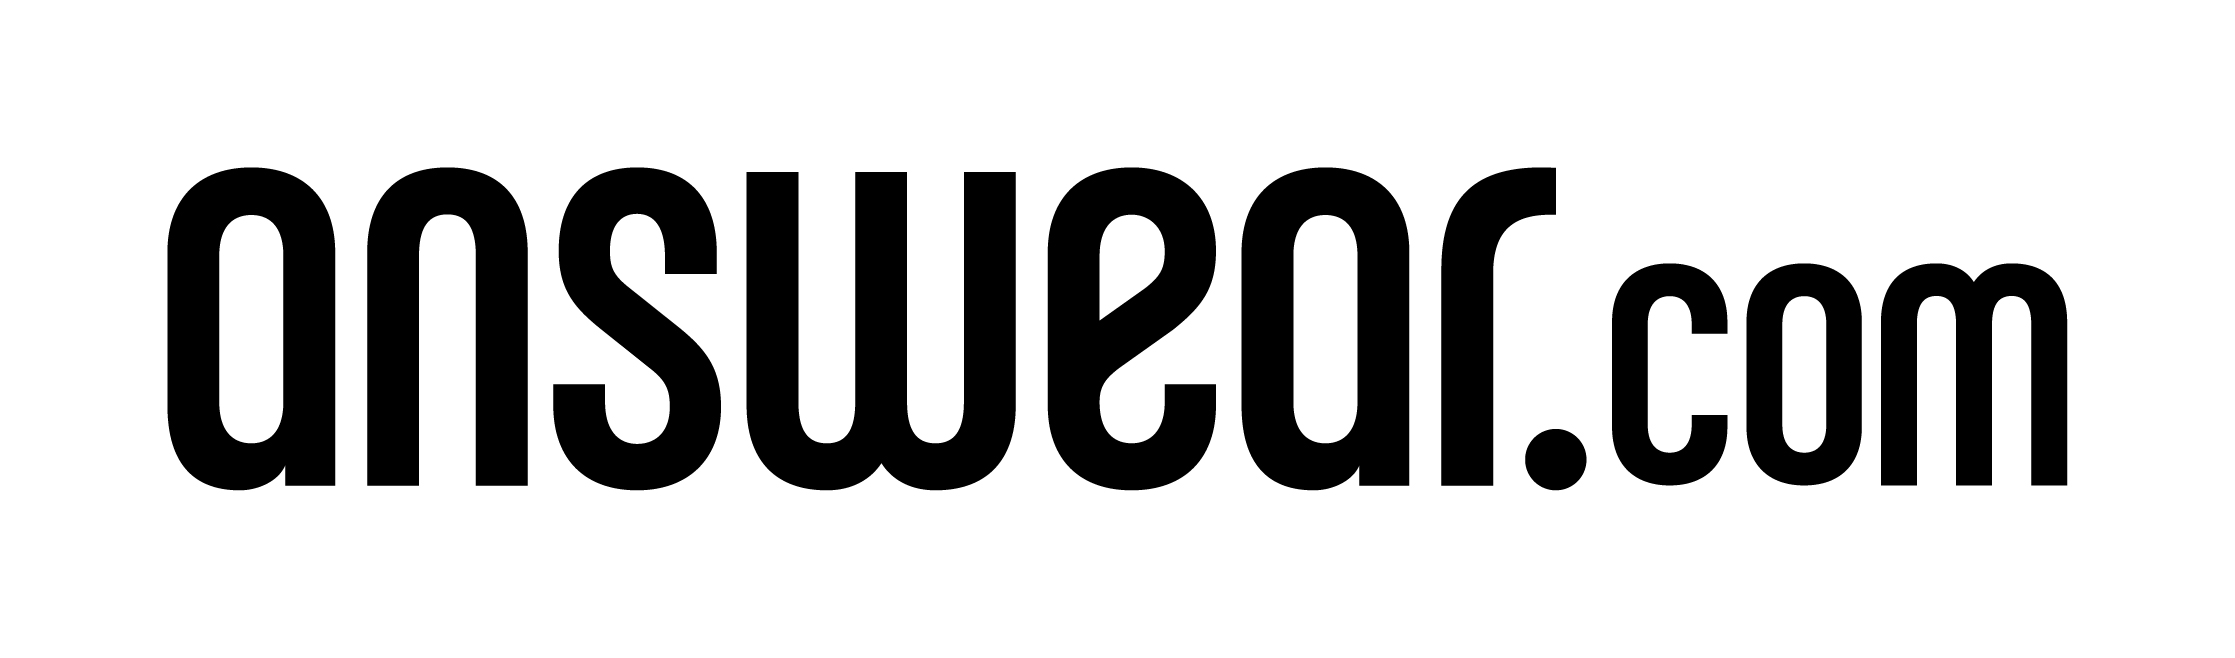 Answear - logo new